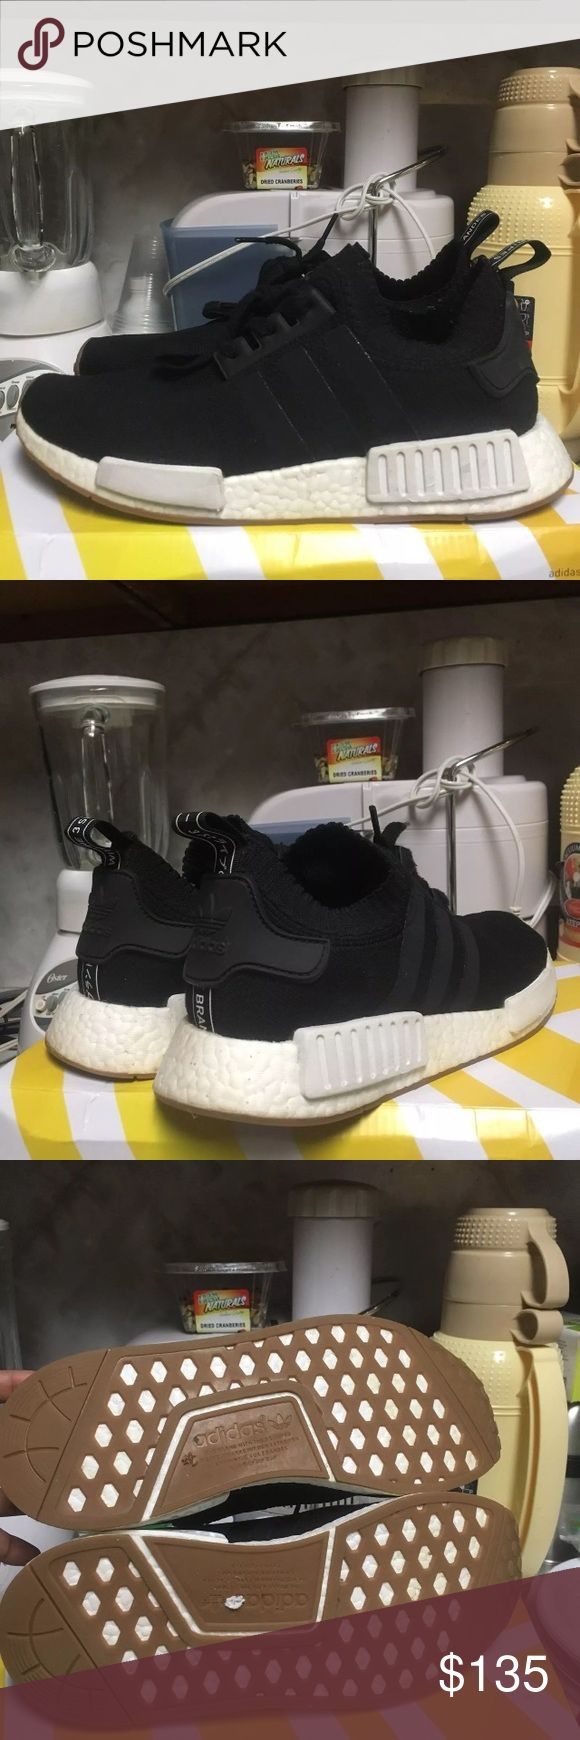 Adidas NMD_R1 PK Gum bottom 8/10 condition  Featuring the life enhancing boost midsole  Comes with original box  (different from the box in the pictures) Price is semi firm-send in your offers! adidas Shoes Sneakers